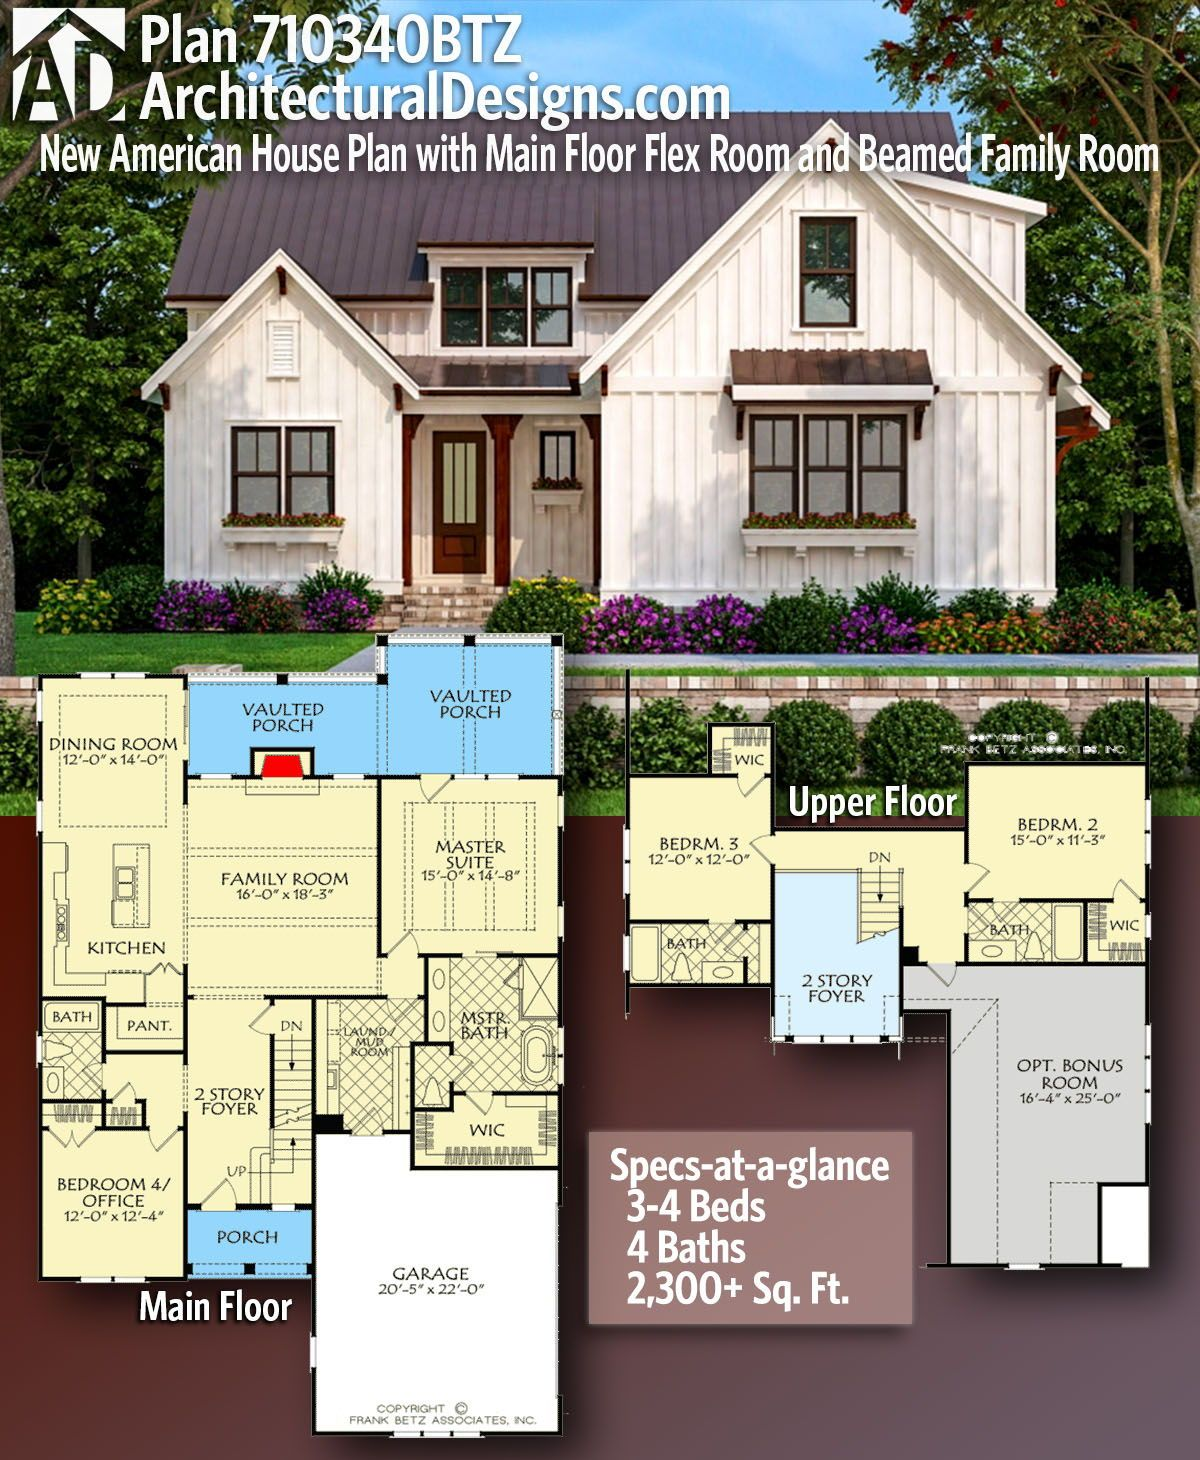 Plan 710340btz New American House Plan With Main Floor Flex Room And Beamed Family Room American Houses House Plans Farmhouse New House Plans